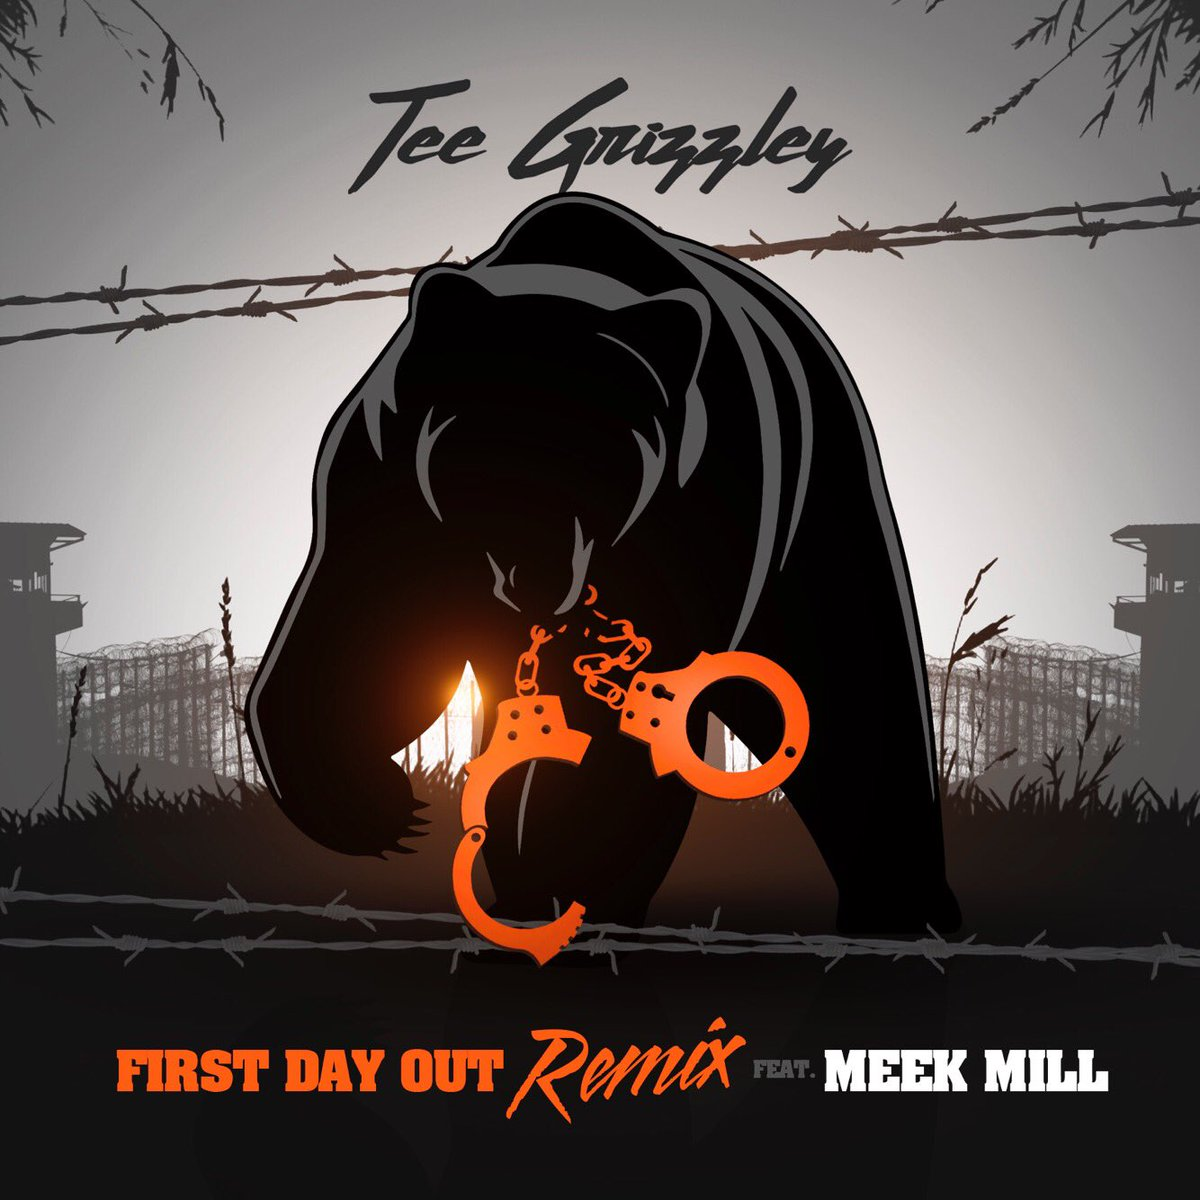 meek mill first day out remix